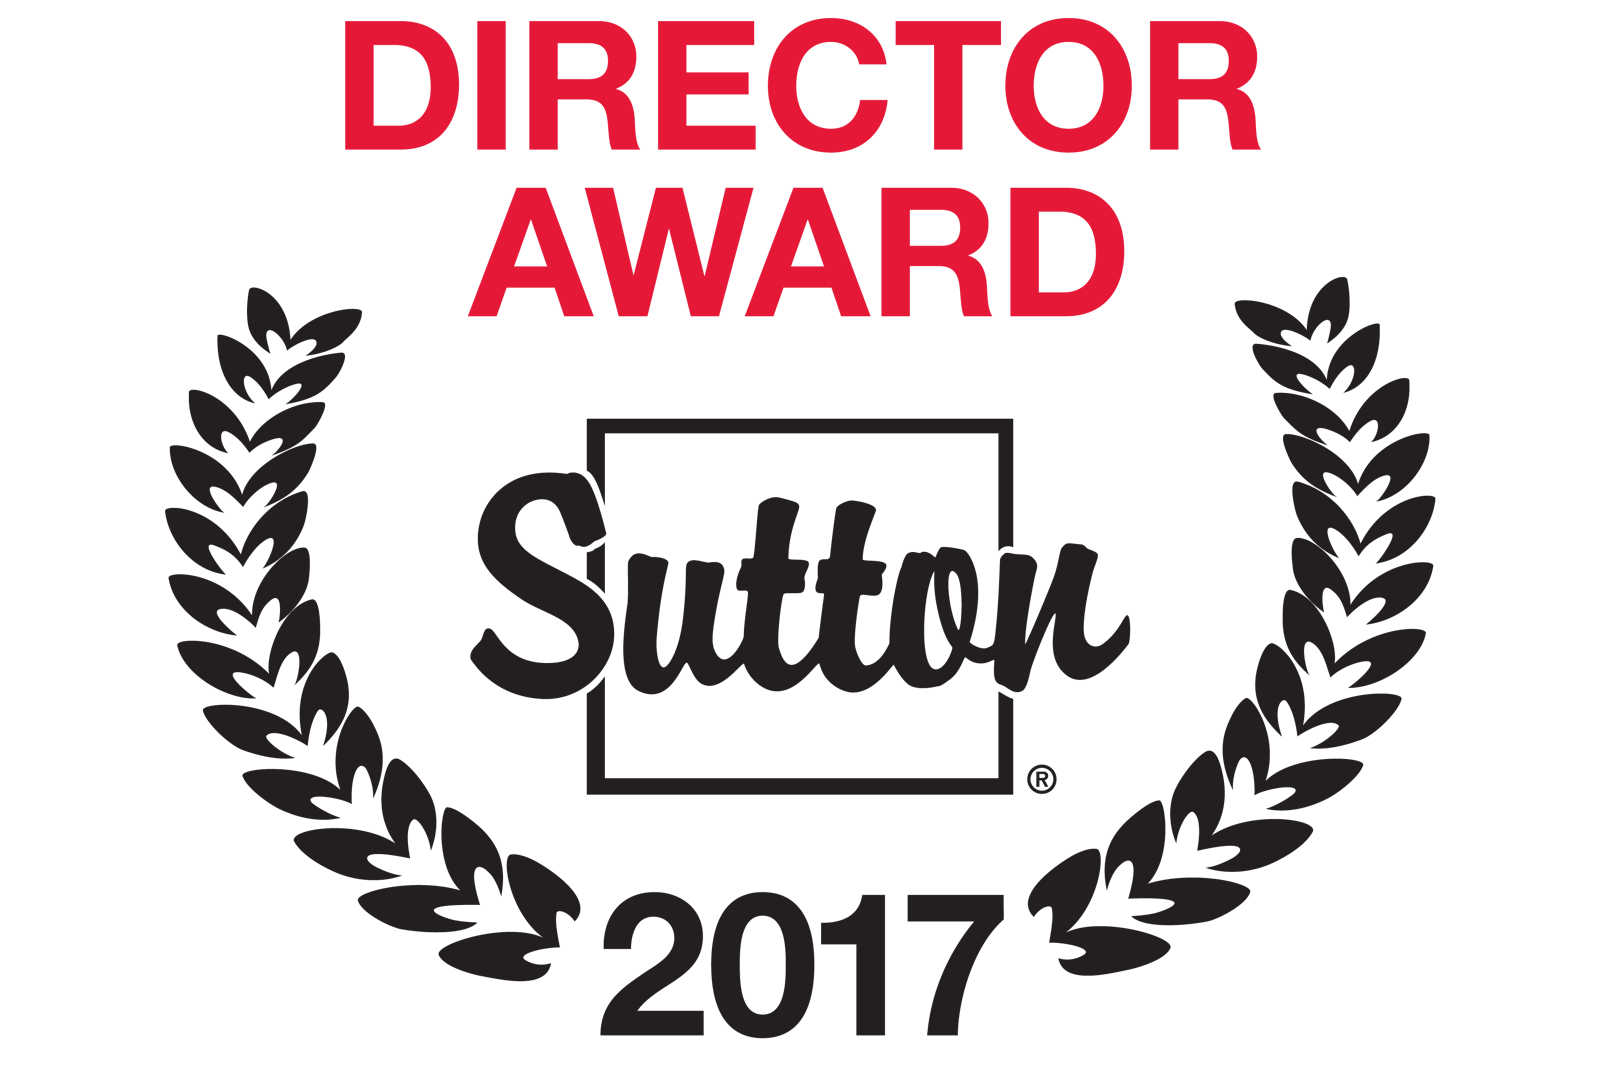 Director Award Sutton 2017